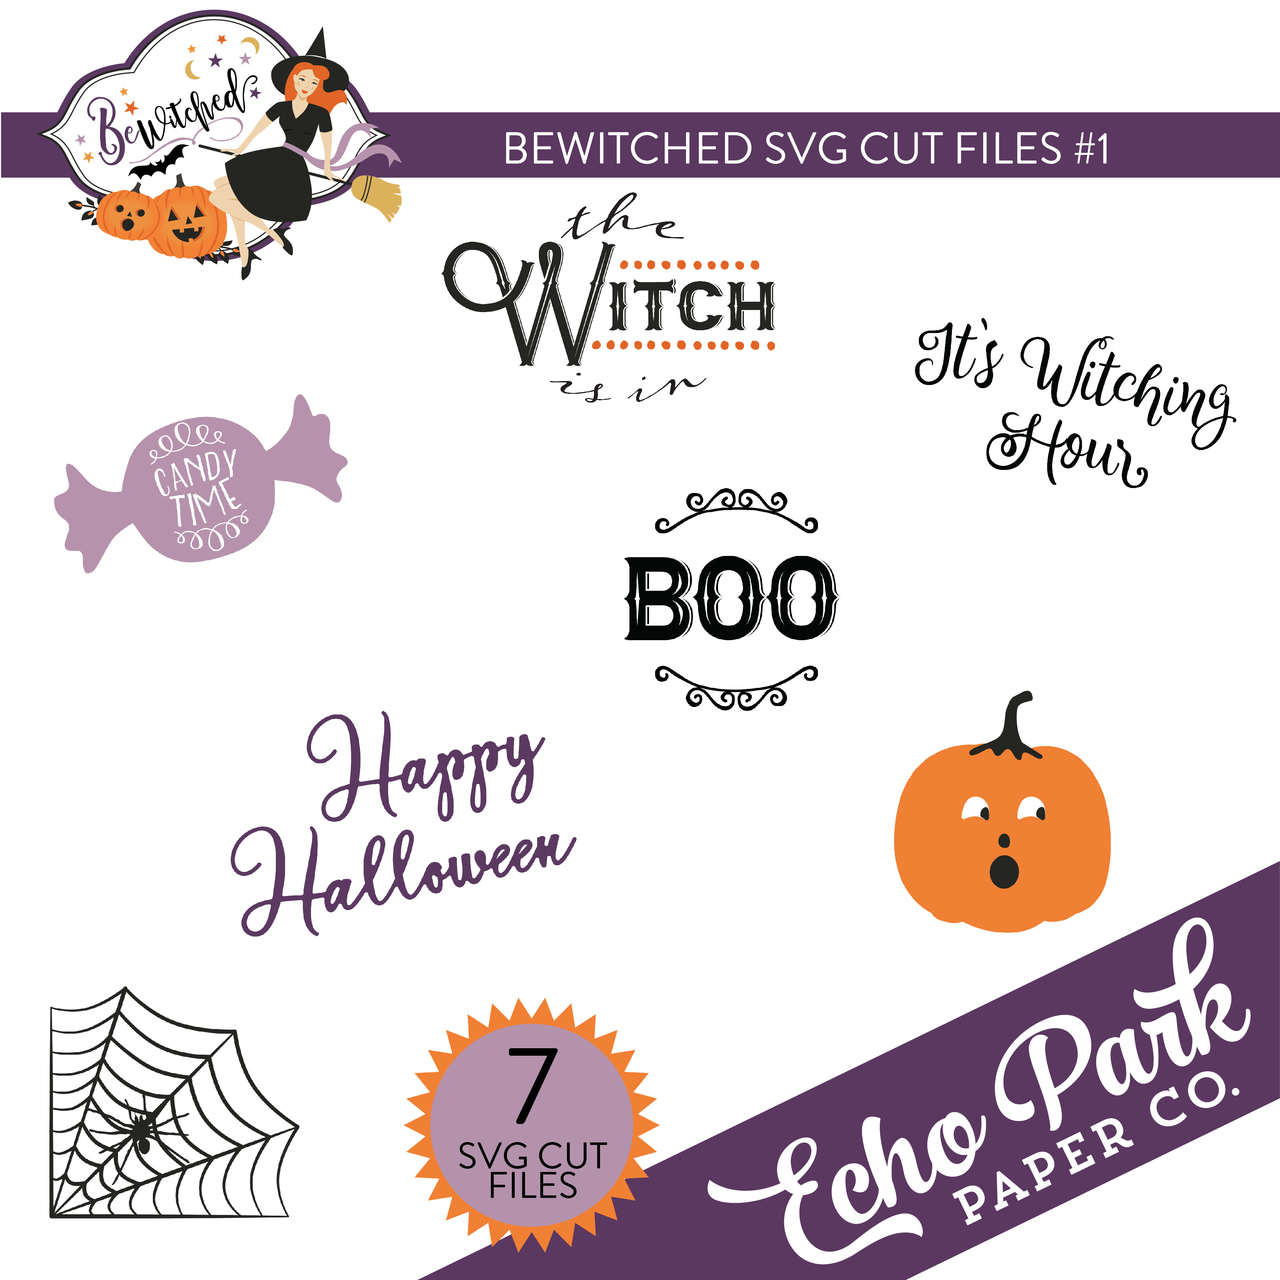 Bewitched SVG Cut Files #1